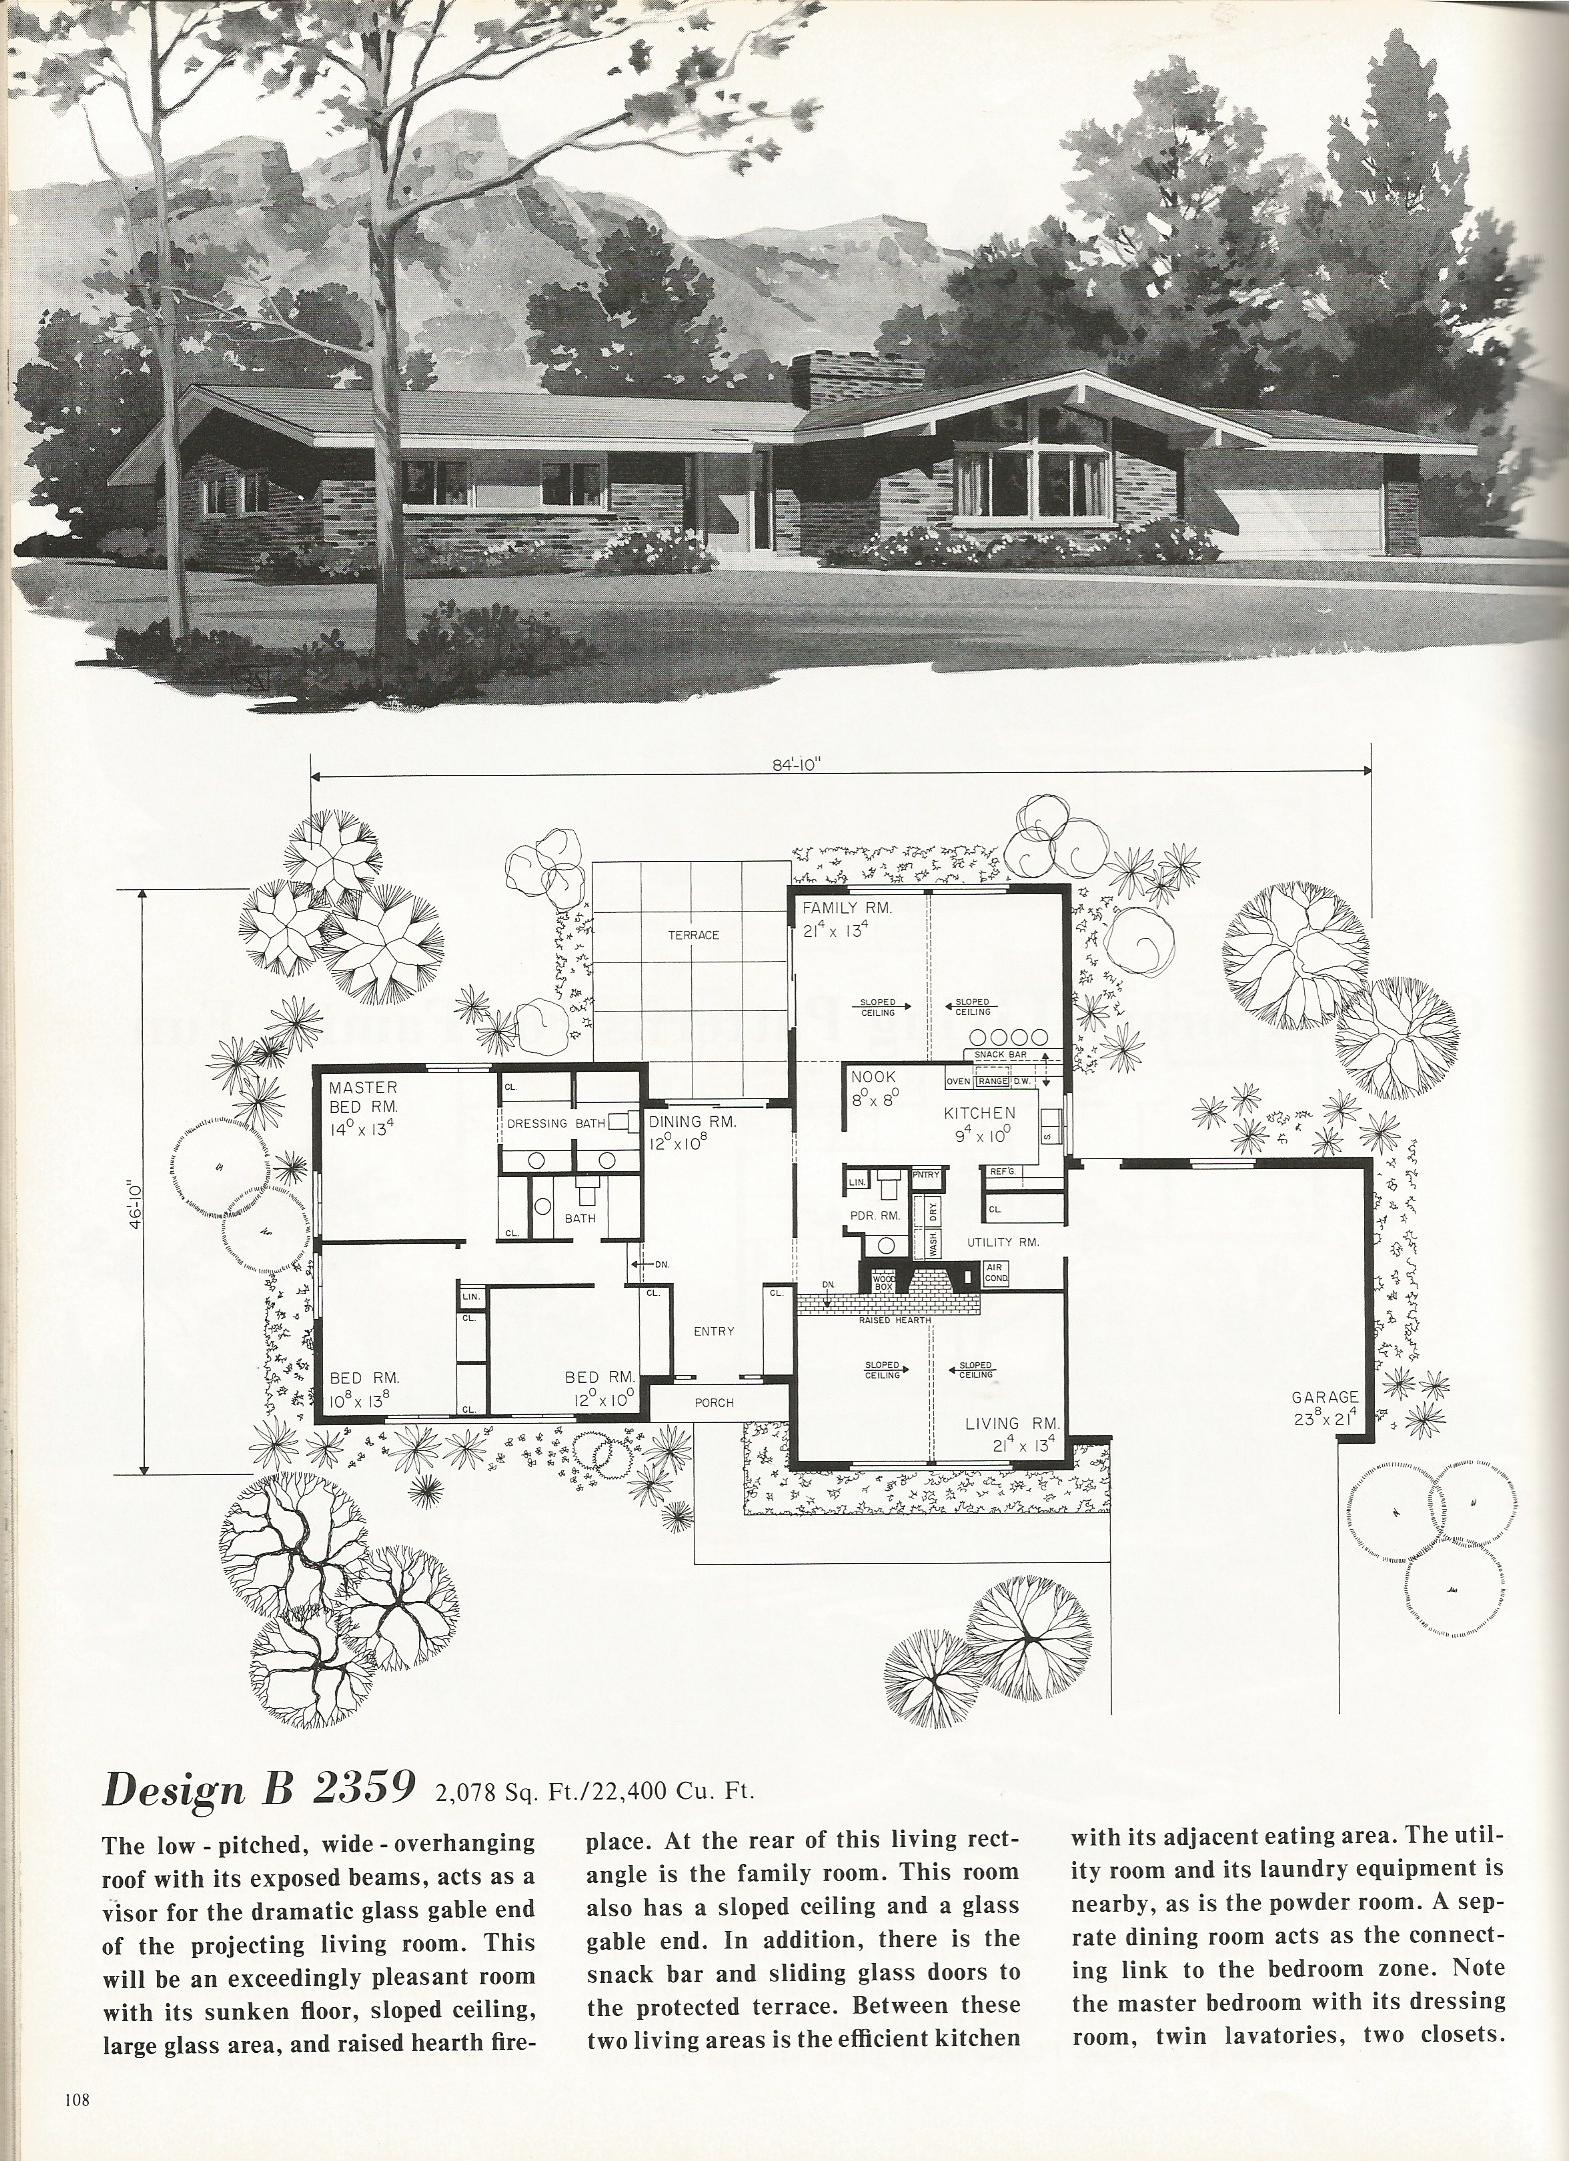 Vintage house plans 2359 antique alter ego for Vintage home plans